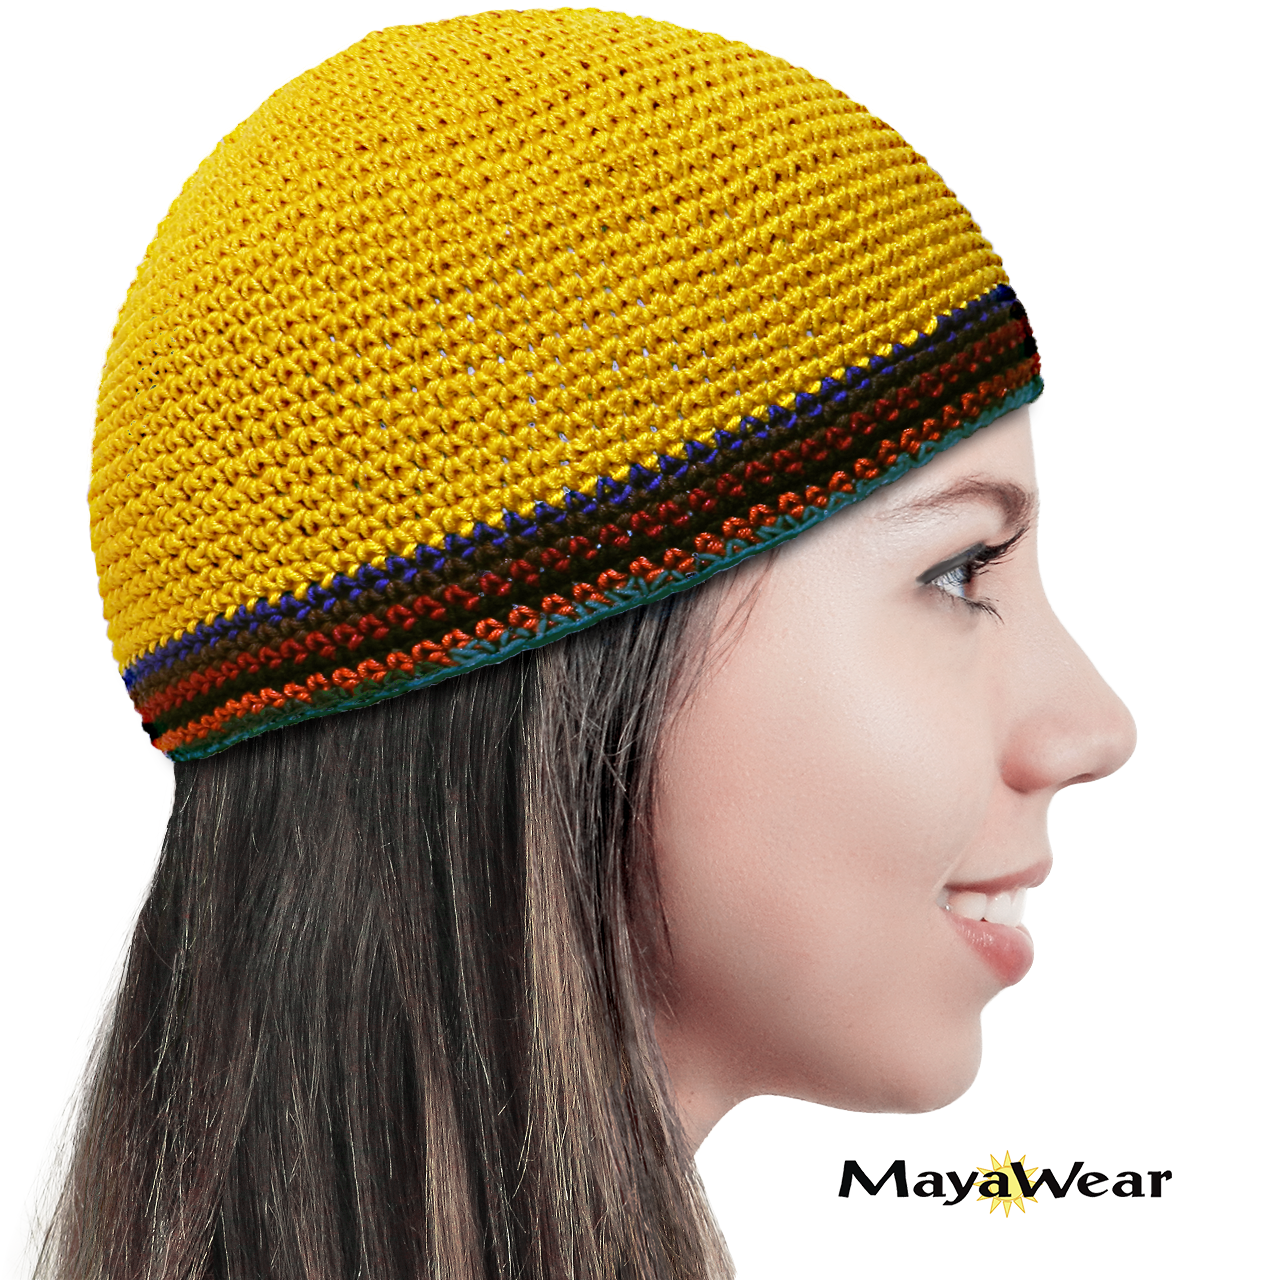 KUF62 Golden with Multi-Color Trim www.mayawear.com